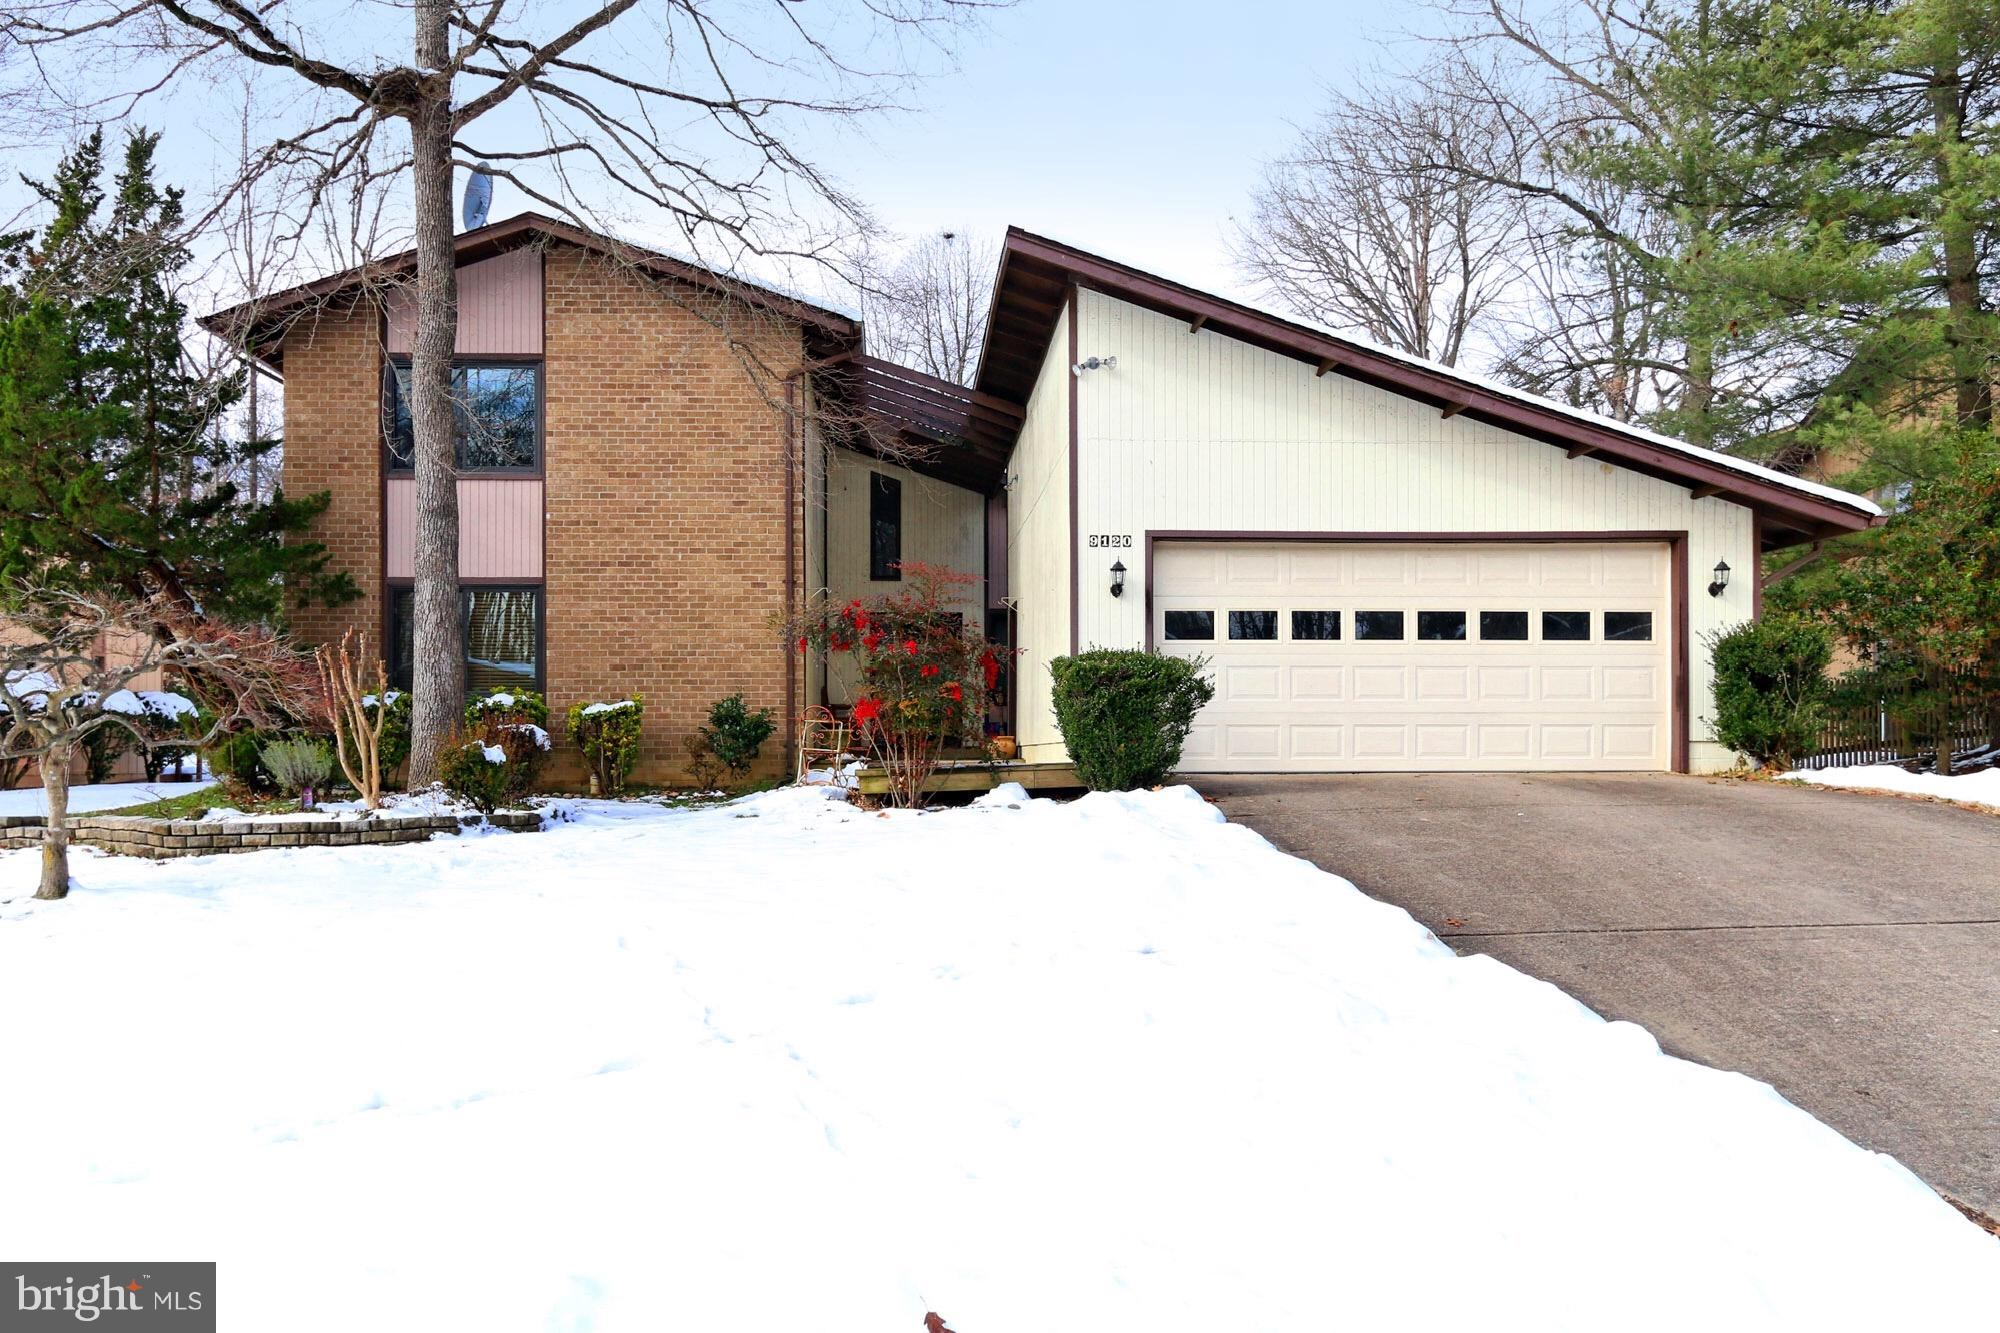 Showing on 1/19 and 1/20 only (11:30am -4:30pm). Inviting contemporary spacious  home with 4 Beds, 3 baths in sought after Signal Hill. New windows and sliding doors throughout (2017). Hardwood floors. Eat-in Kitchen and Family room combo with newer SS appliances and granite top. Cozy Family room with gas fireplace. Main level bedroom with full bath. Master suite with bath, walk-in closet  and private balcony. Sliding glass door to Deck. Gas Heat! Walk to Lake Braddock secondary school, Kings Park Library and Shopping center. Excellent commuter location with easy access to Braddock road, FFX County Pkwy, 495& 95. Bring Offers!